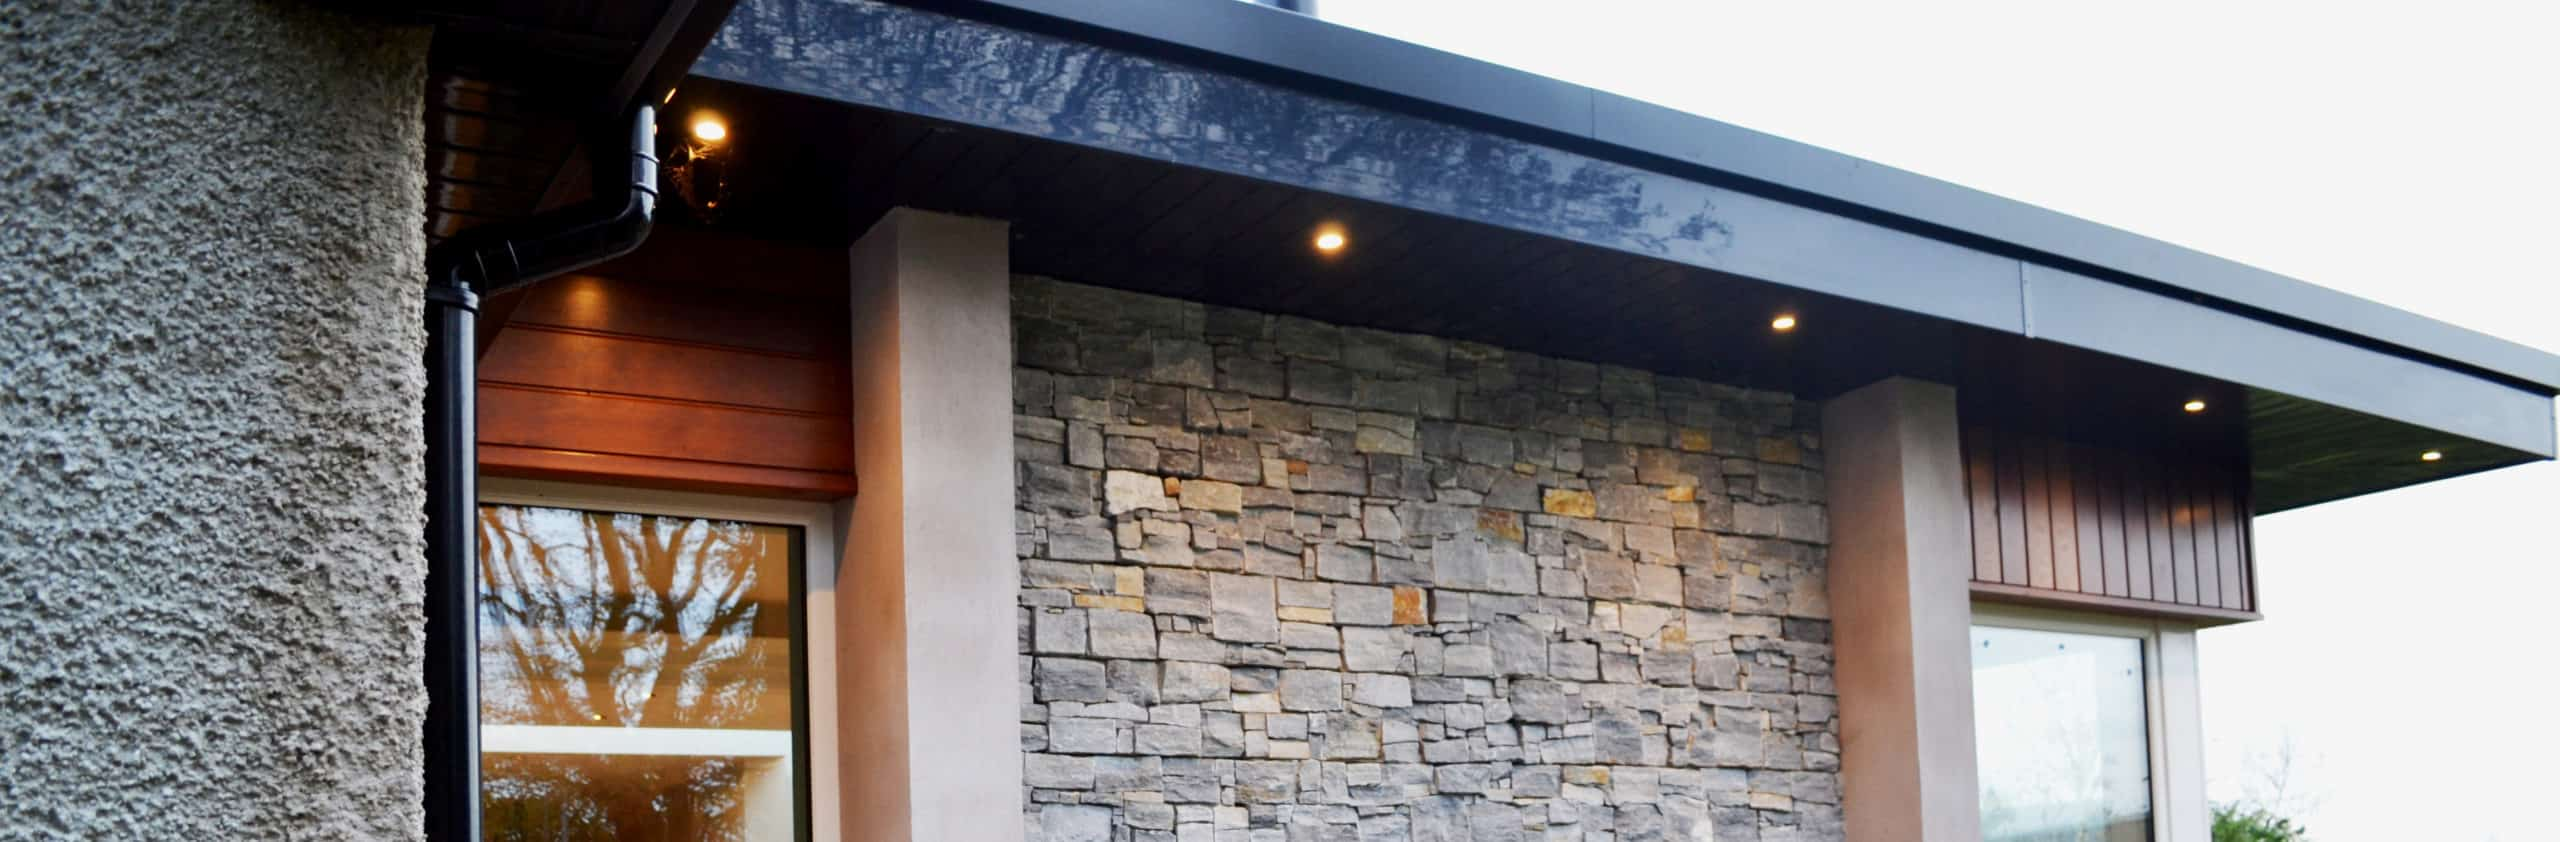 Forster Extension - Feature Stone